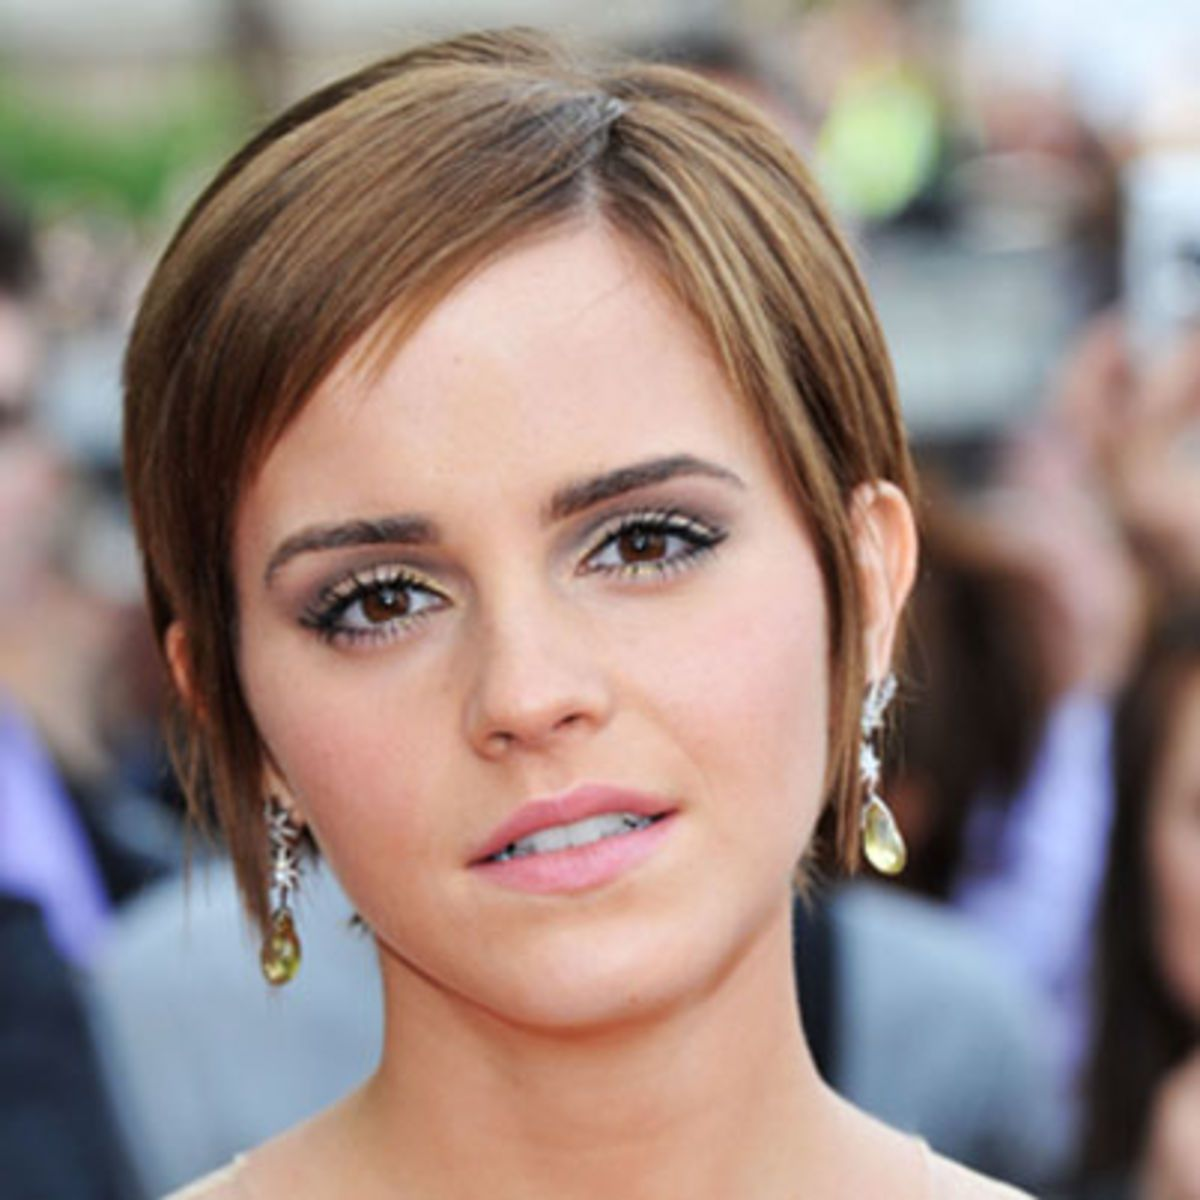 Emma Watson, star of the Harry Potter film series, has